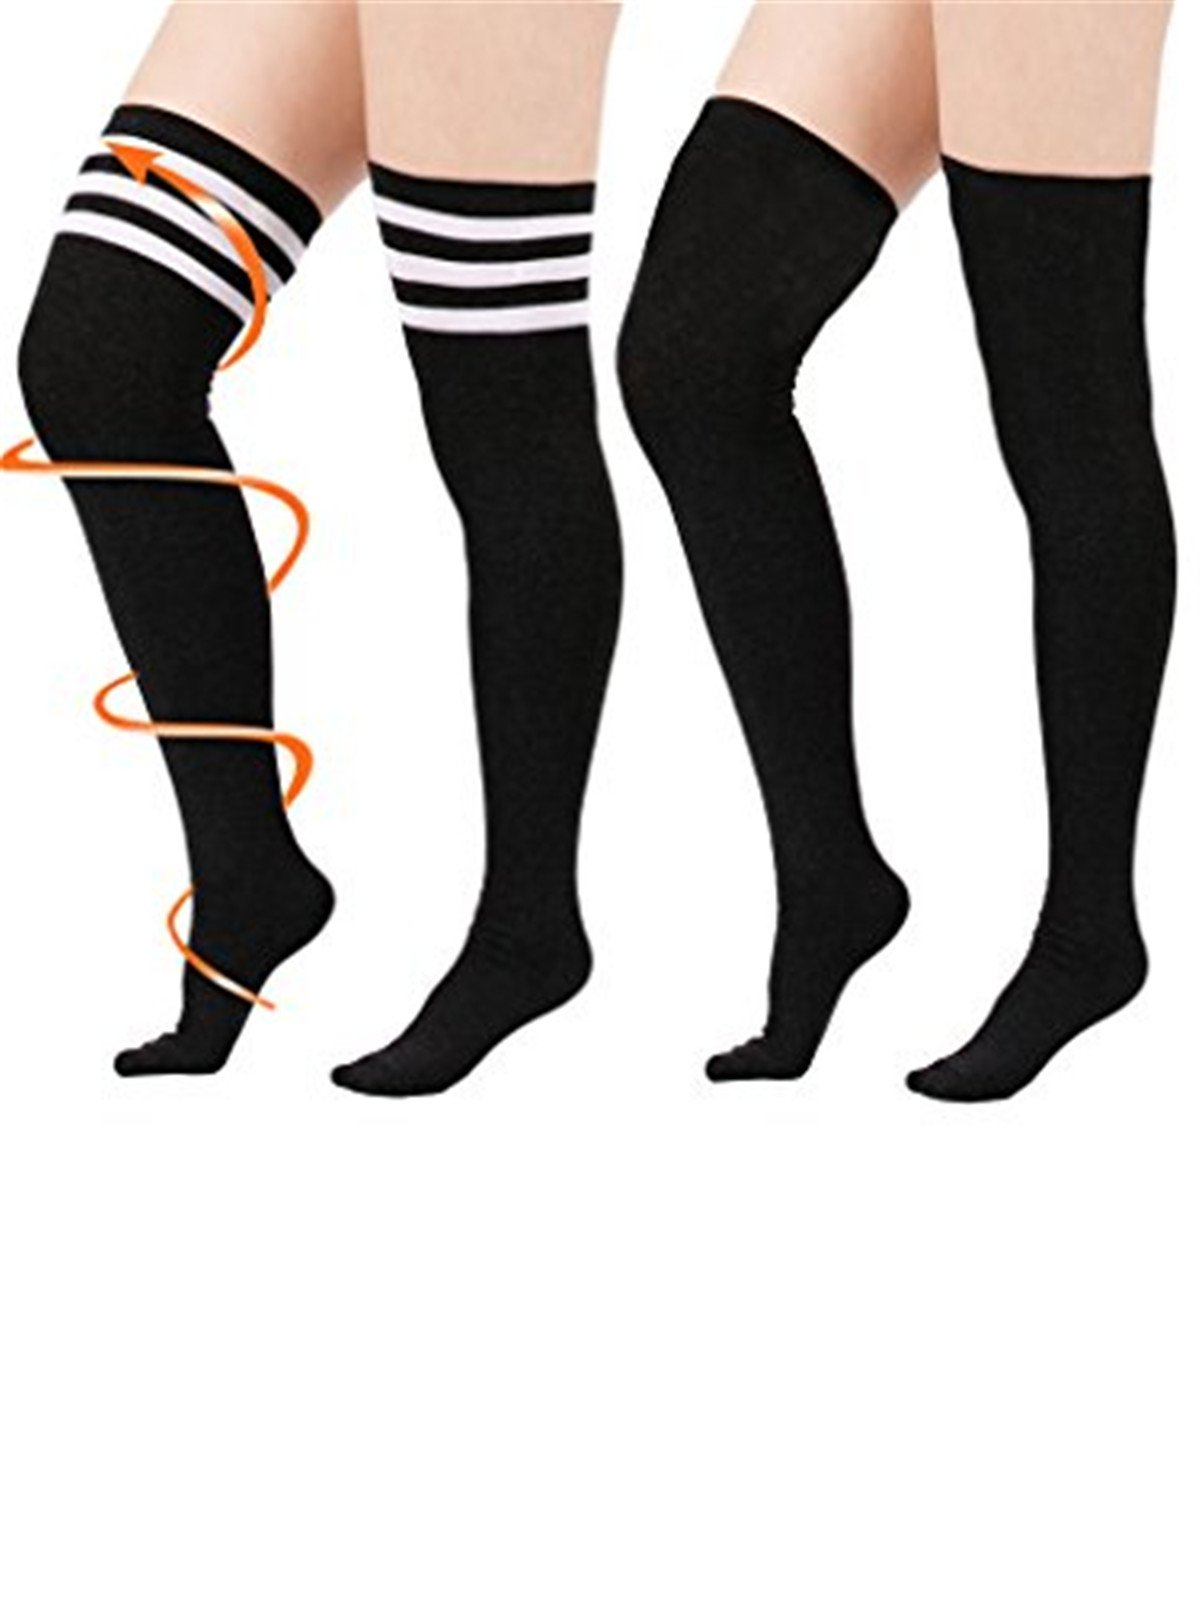 Women Girls Plus Size Kawaii Over Knee Long Tube Socks Thigh High Tights Stretchy Triple Stripes Cosplay Stockings 2 Pairs Goth Black